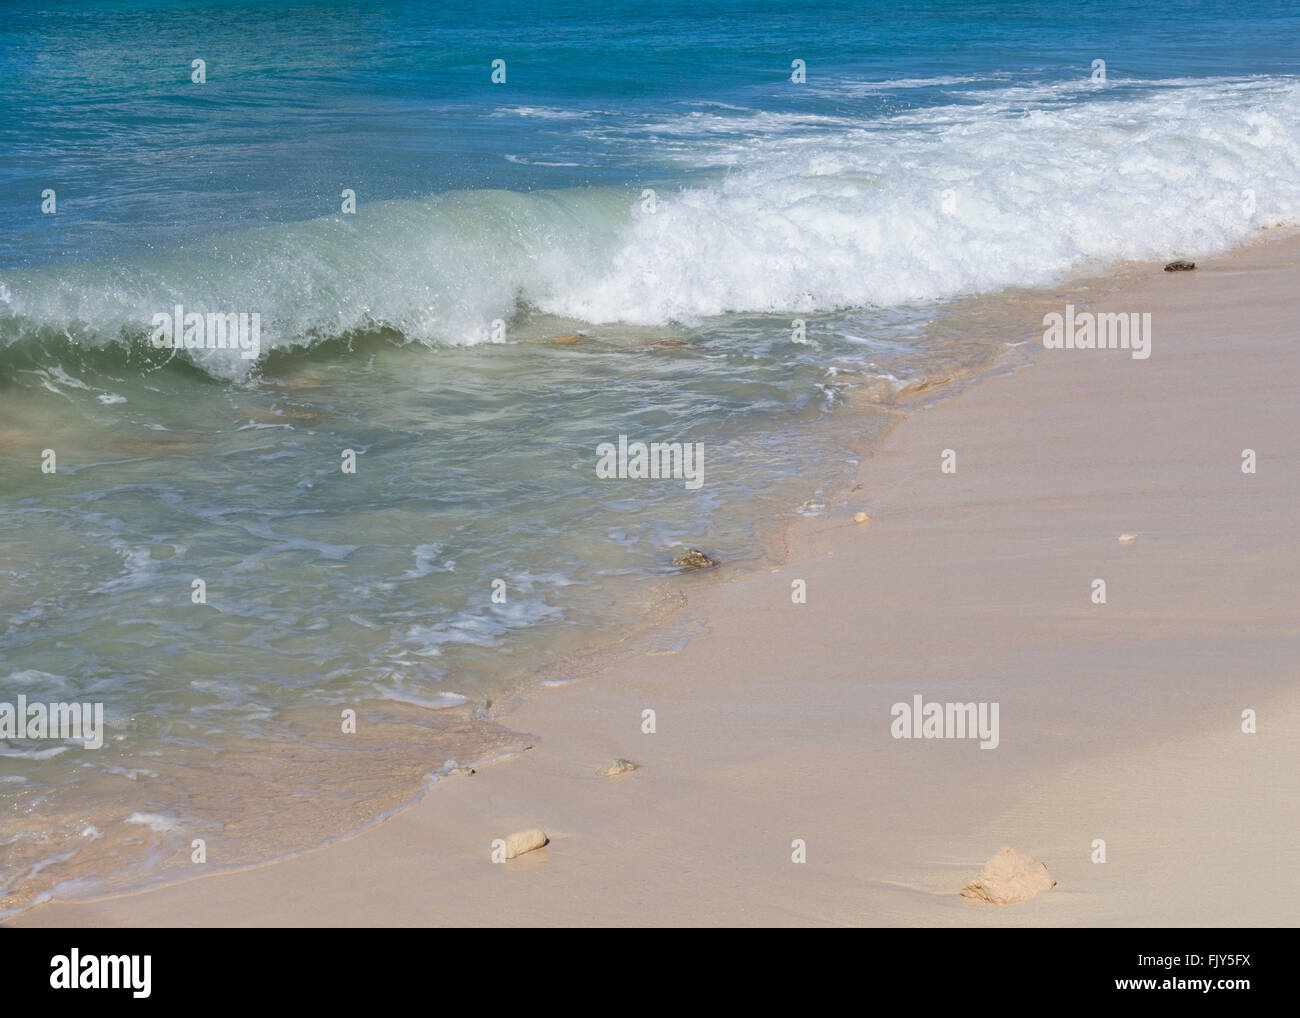 The beach at Grand Turk, Turks and Caicos, British West Indies in the Caribbean - Stock Image